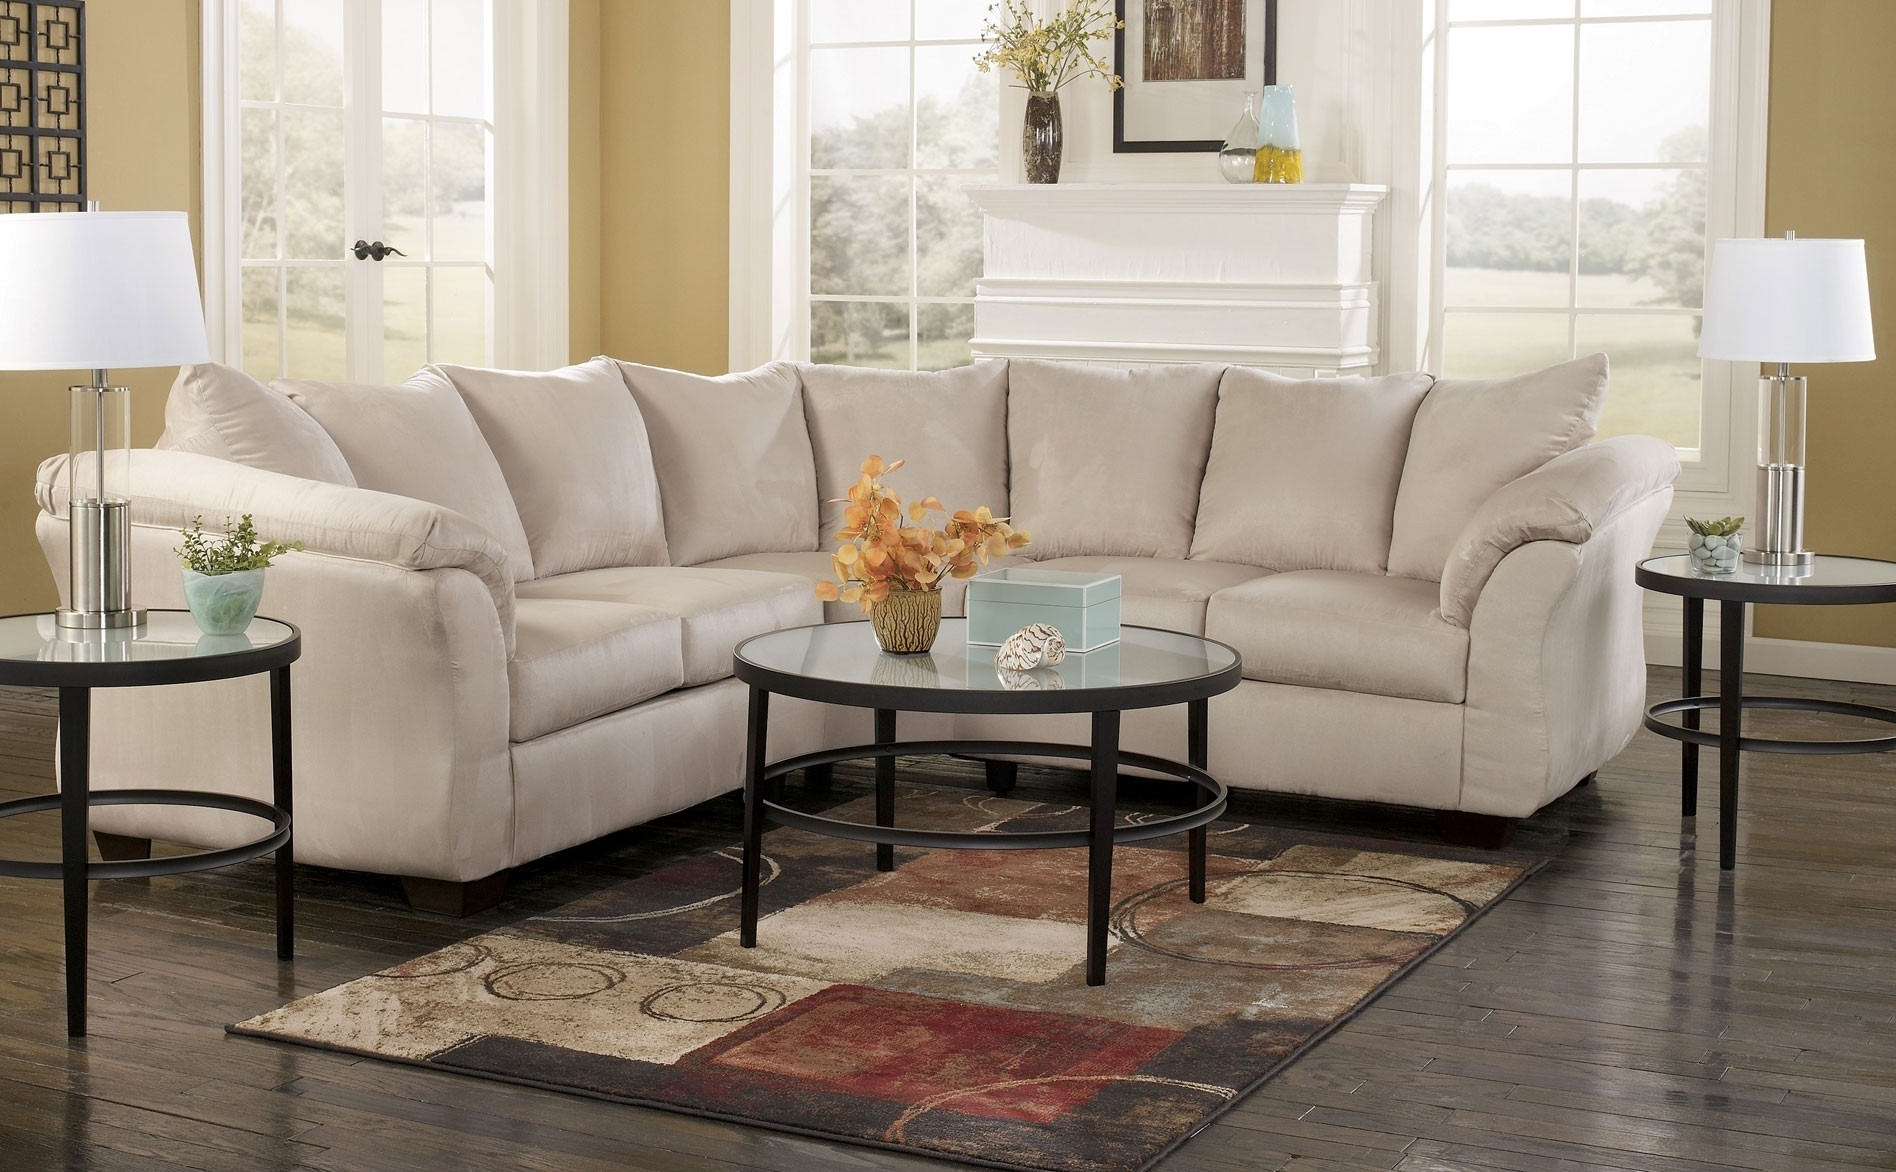 Current Mathis Brothers Sectional Sofas In Furniture: Inspiring Living Room Decor With Cheap Sectional Sofas (View 6 of 20)